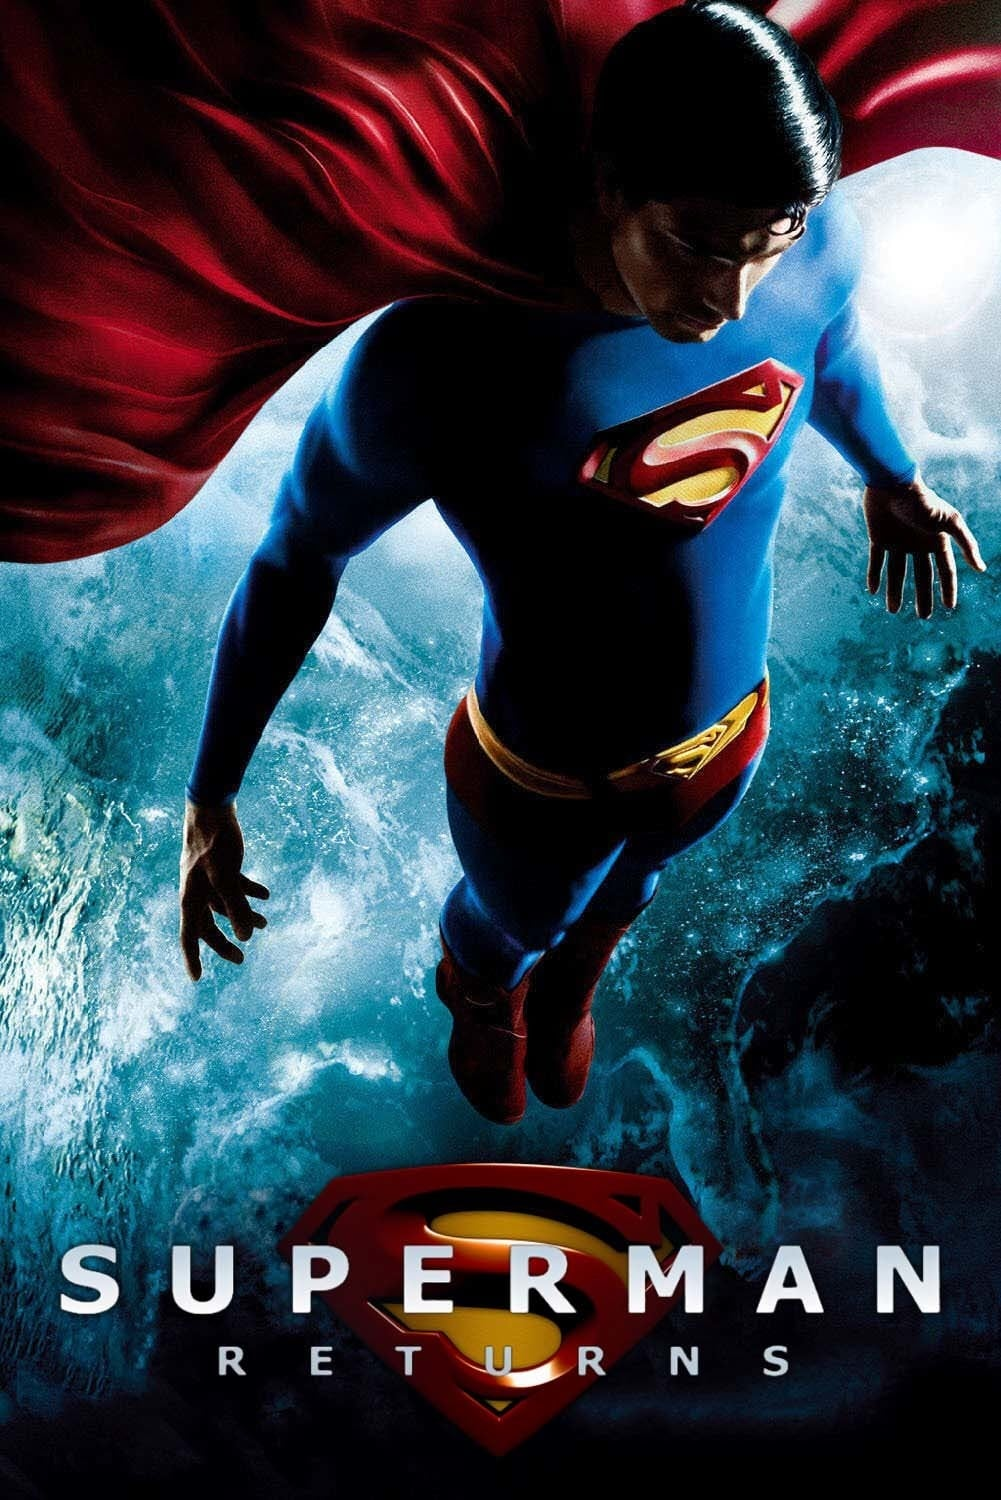 Poster and image movie Film Superman Revine - Superomul revine - Superman Returns - Superman Returns -  2006